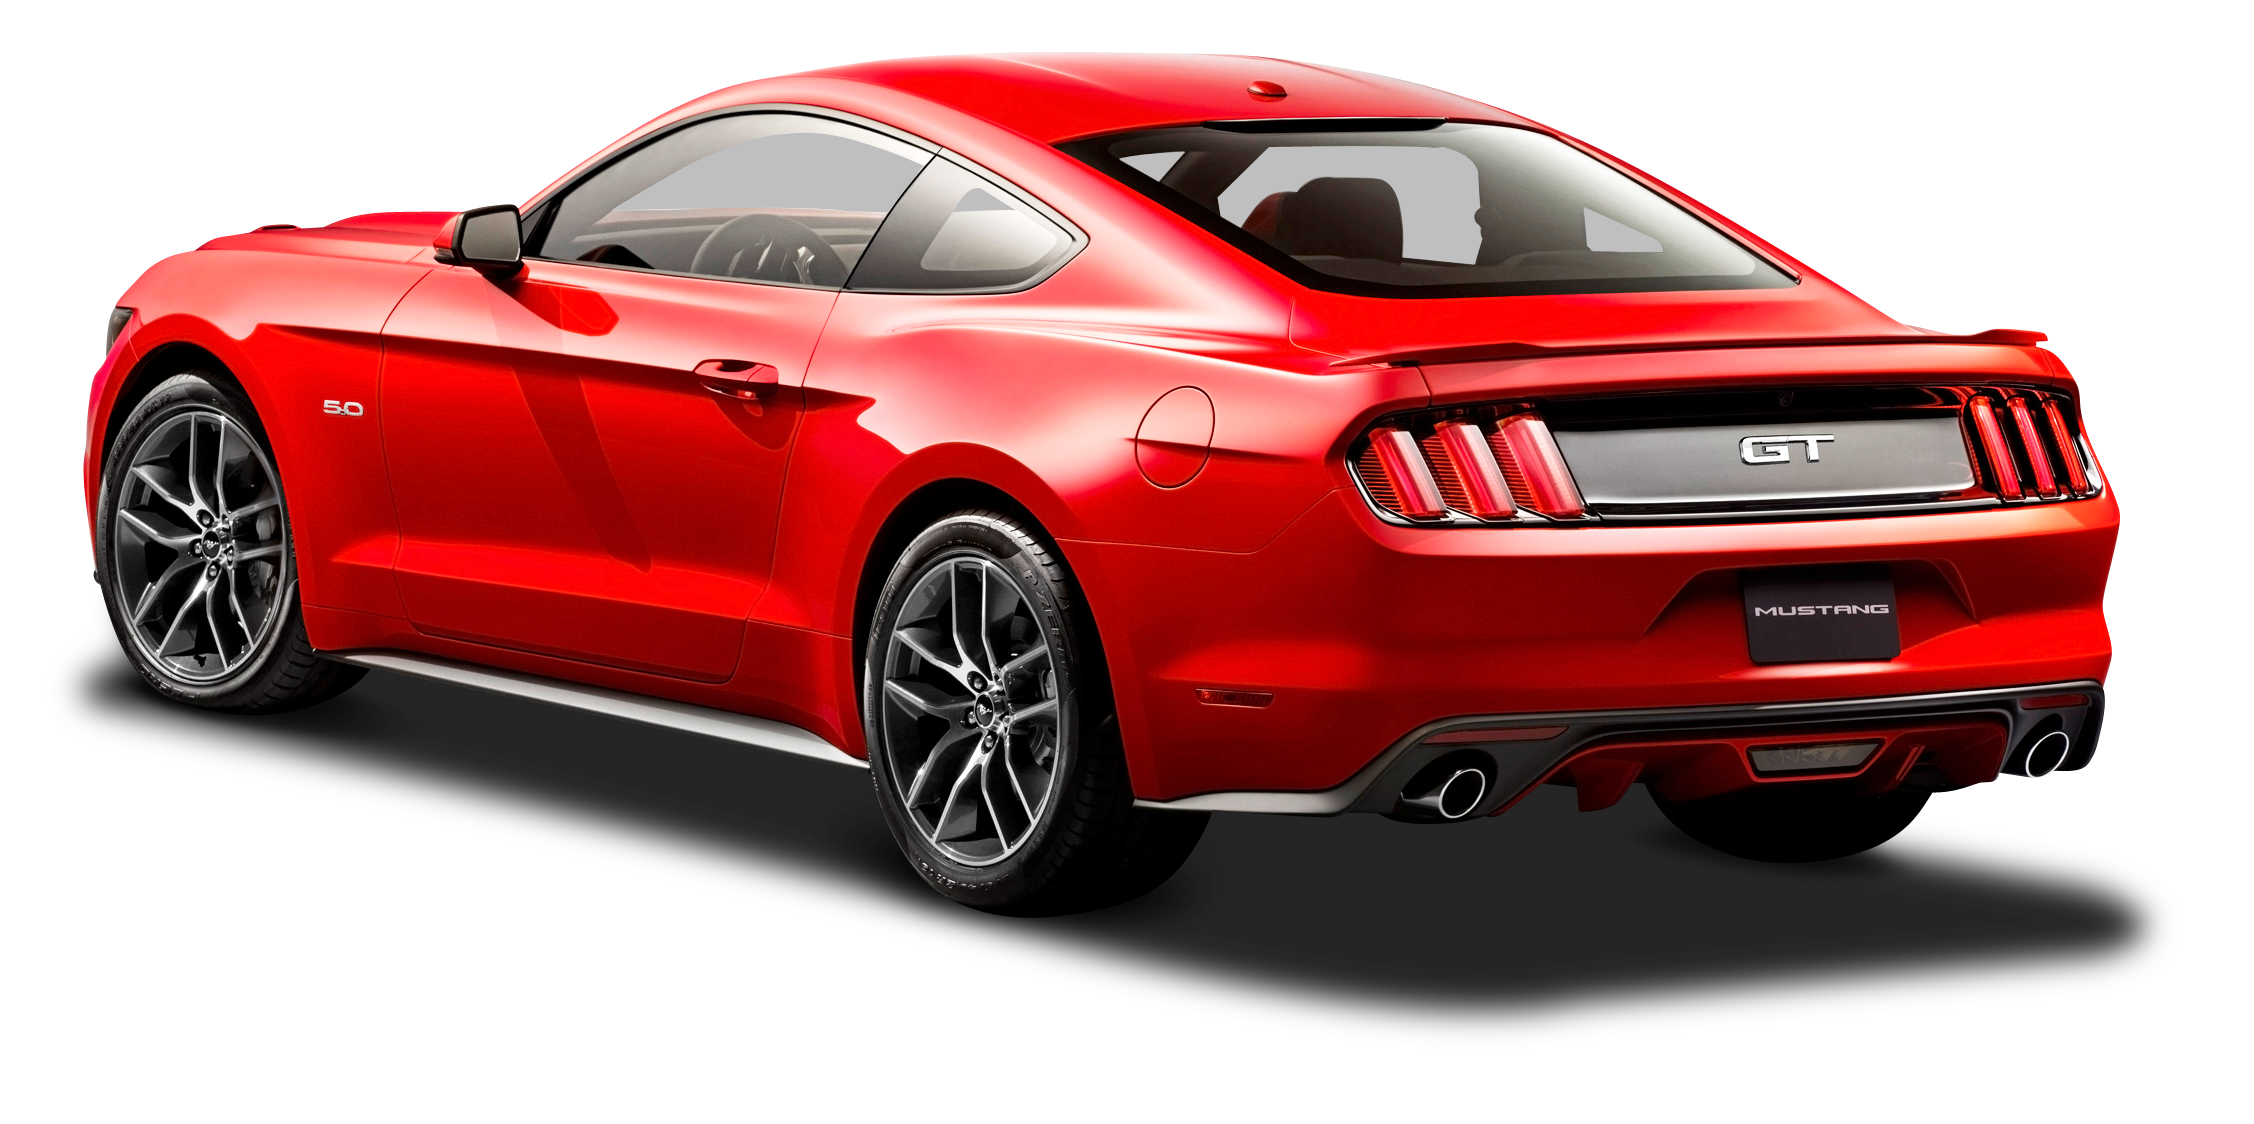 Mustang car clipart free clip art freeuse Ford Mustang Red Car Back Side PNG Image - PurePNG | Free ... clip art freeuse